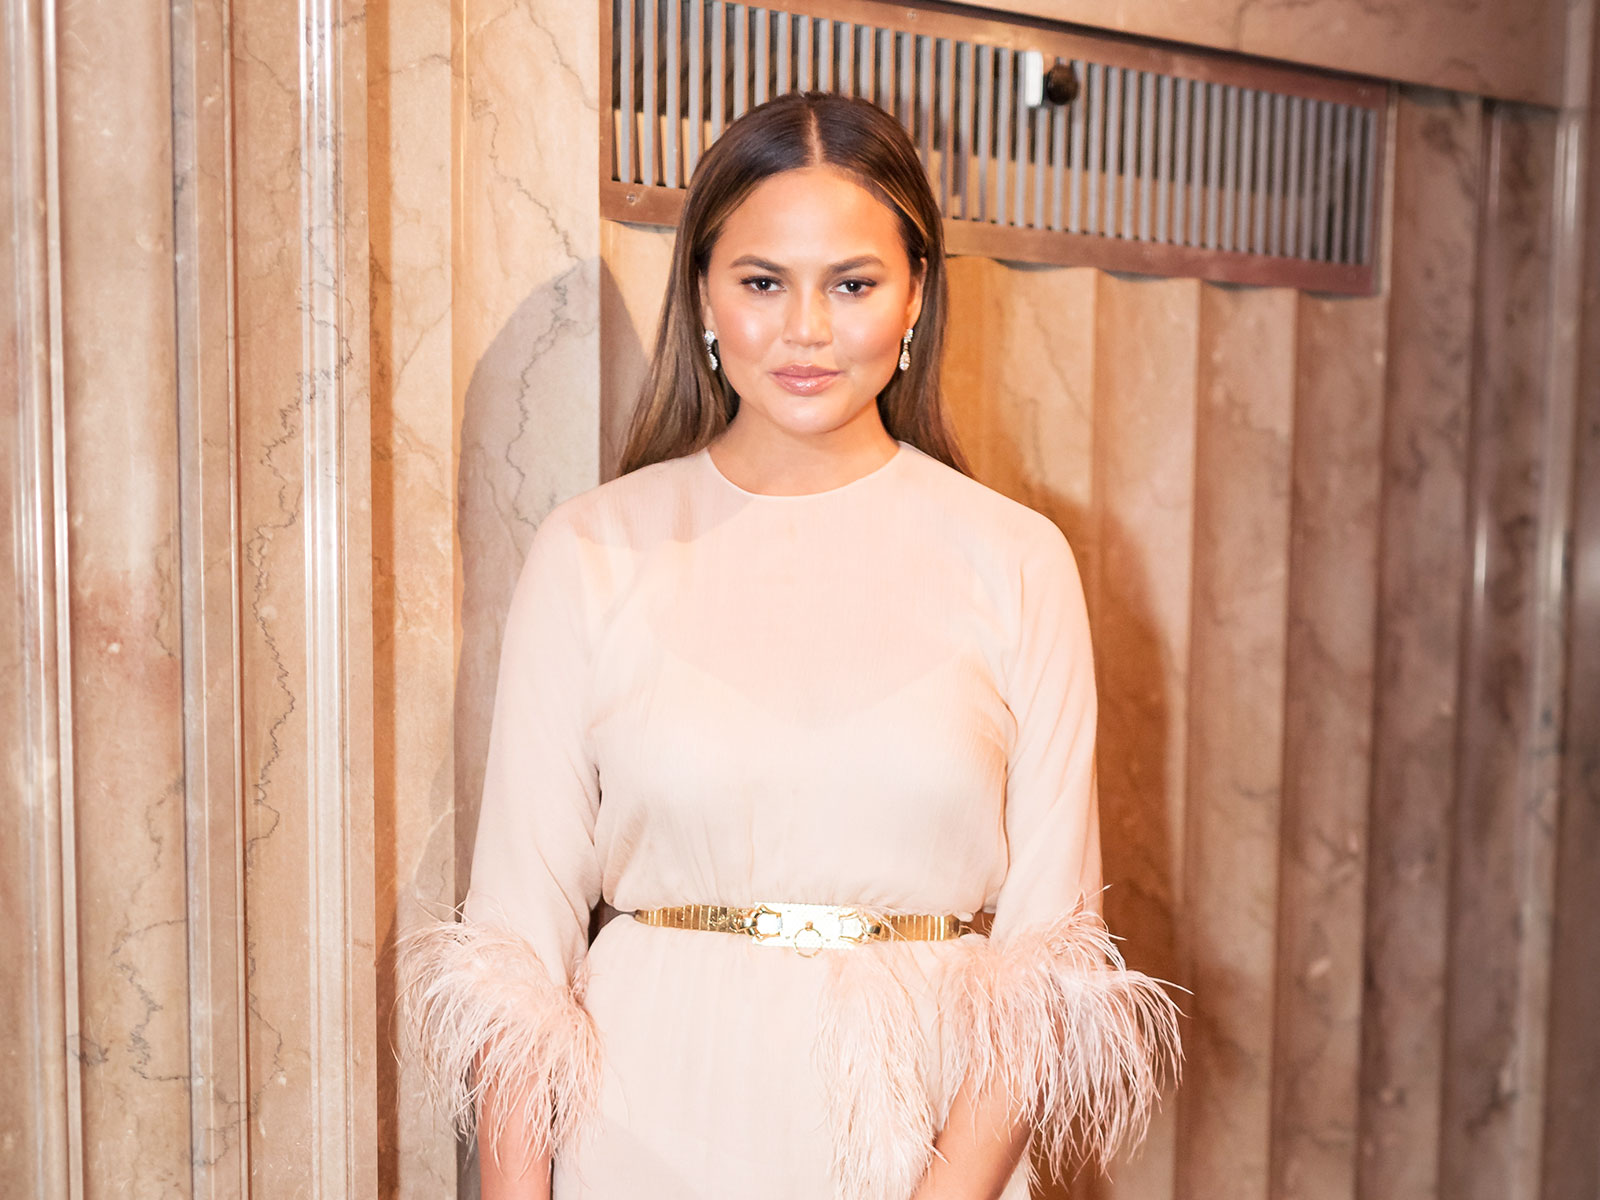 chrissy tegan avocado suit